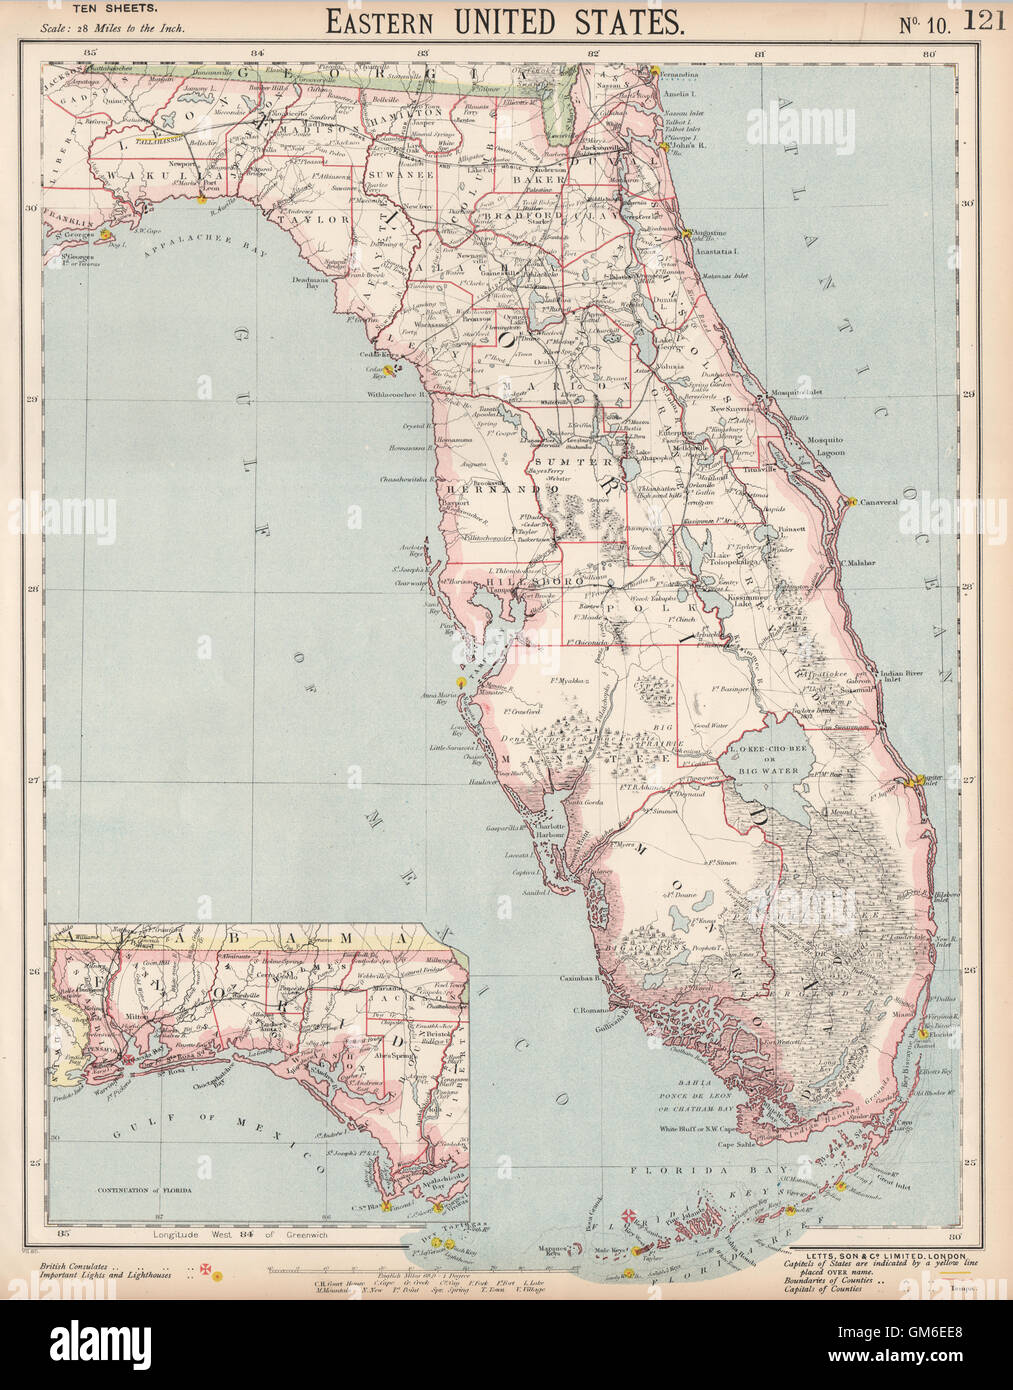 Florida Lighthouses Map.Florida Showing Railroads Lighthouses Forts Miami Tampa Letts